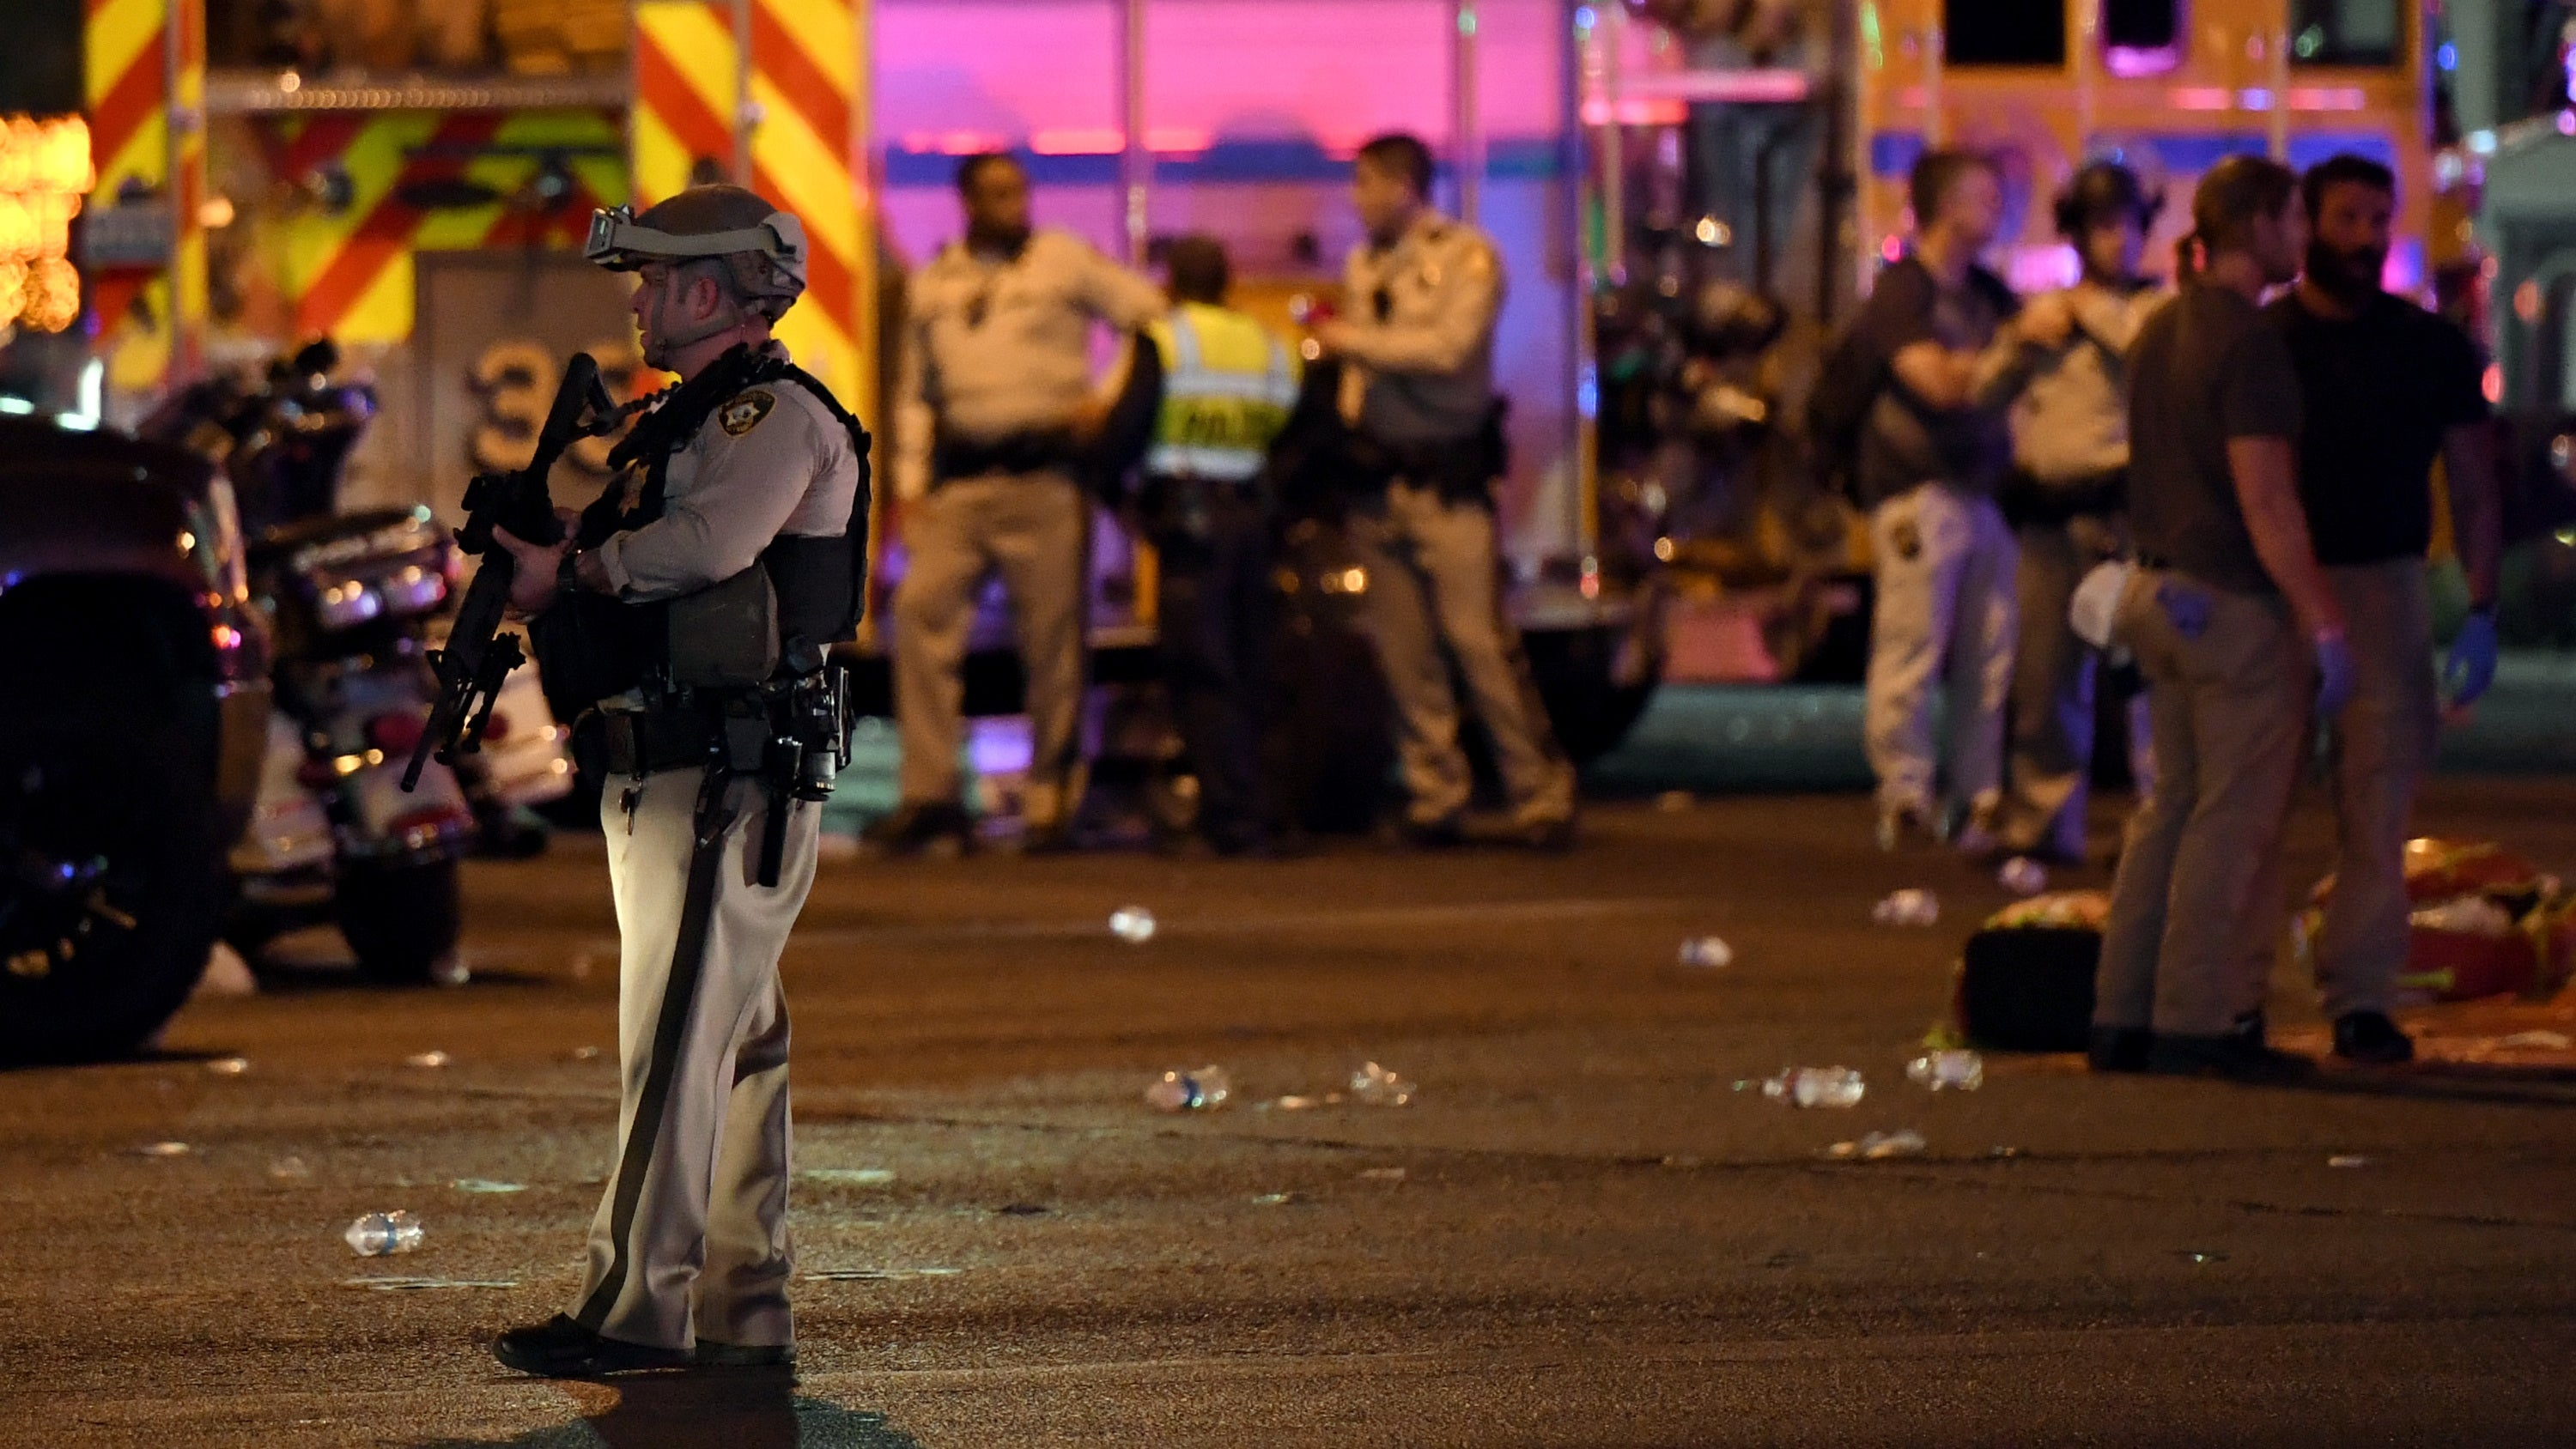 Google's Top Stories Promoted Misinformation About The Las Vegas Shooting From 4Chan